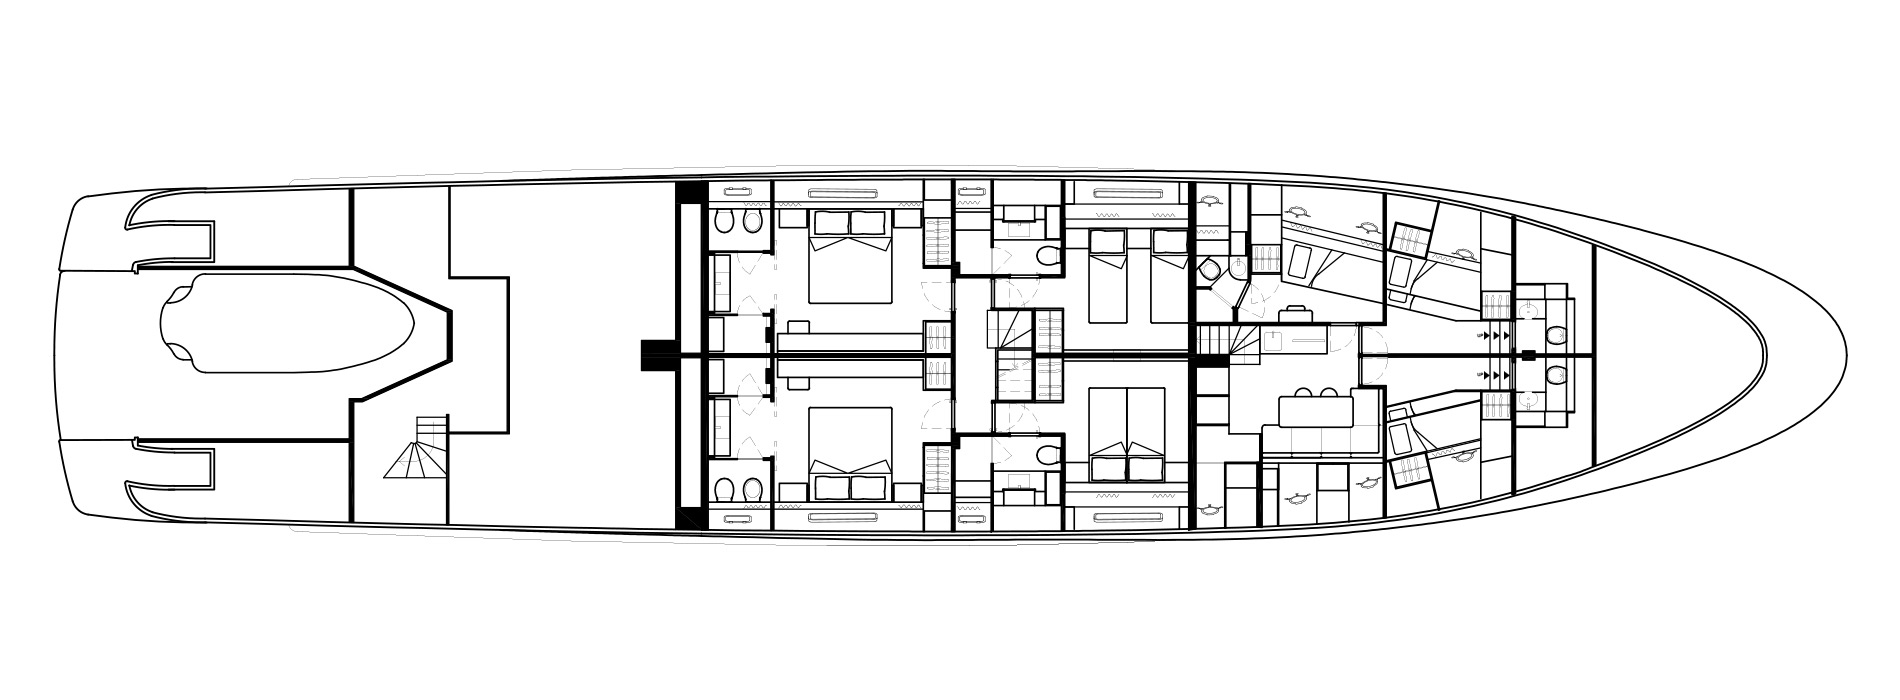 Sanlorenzo Yachts SD126 Lower Deck Versione A bis